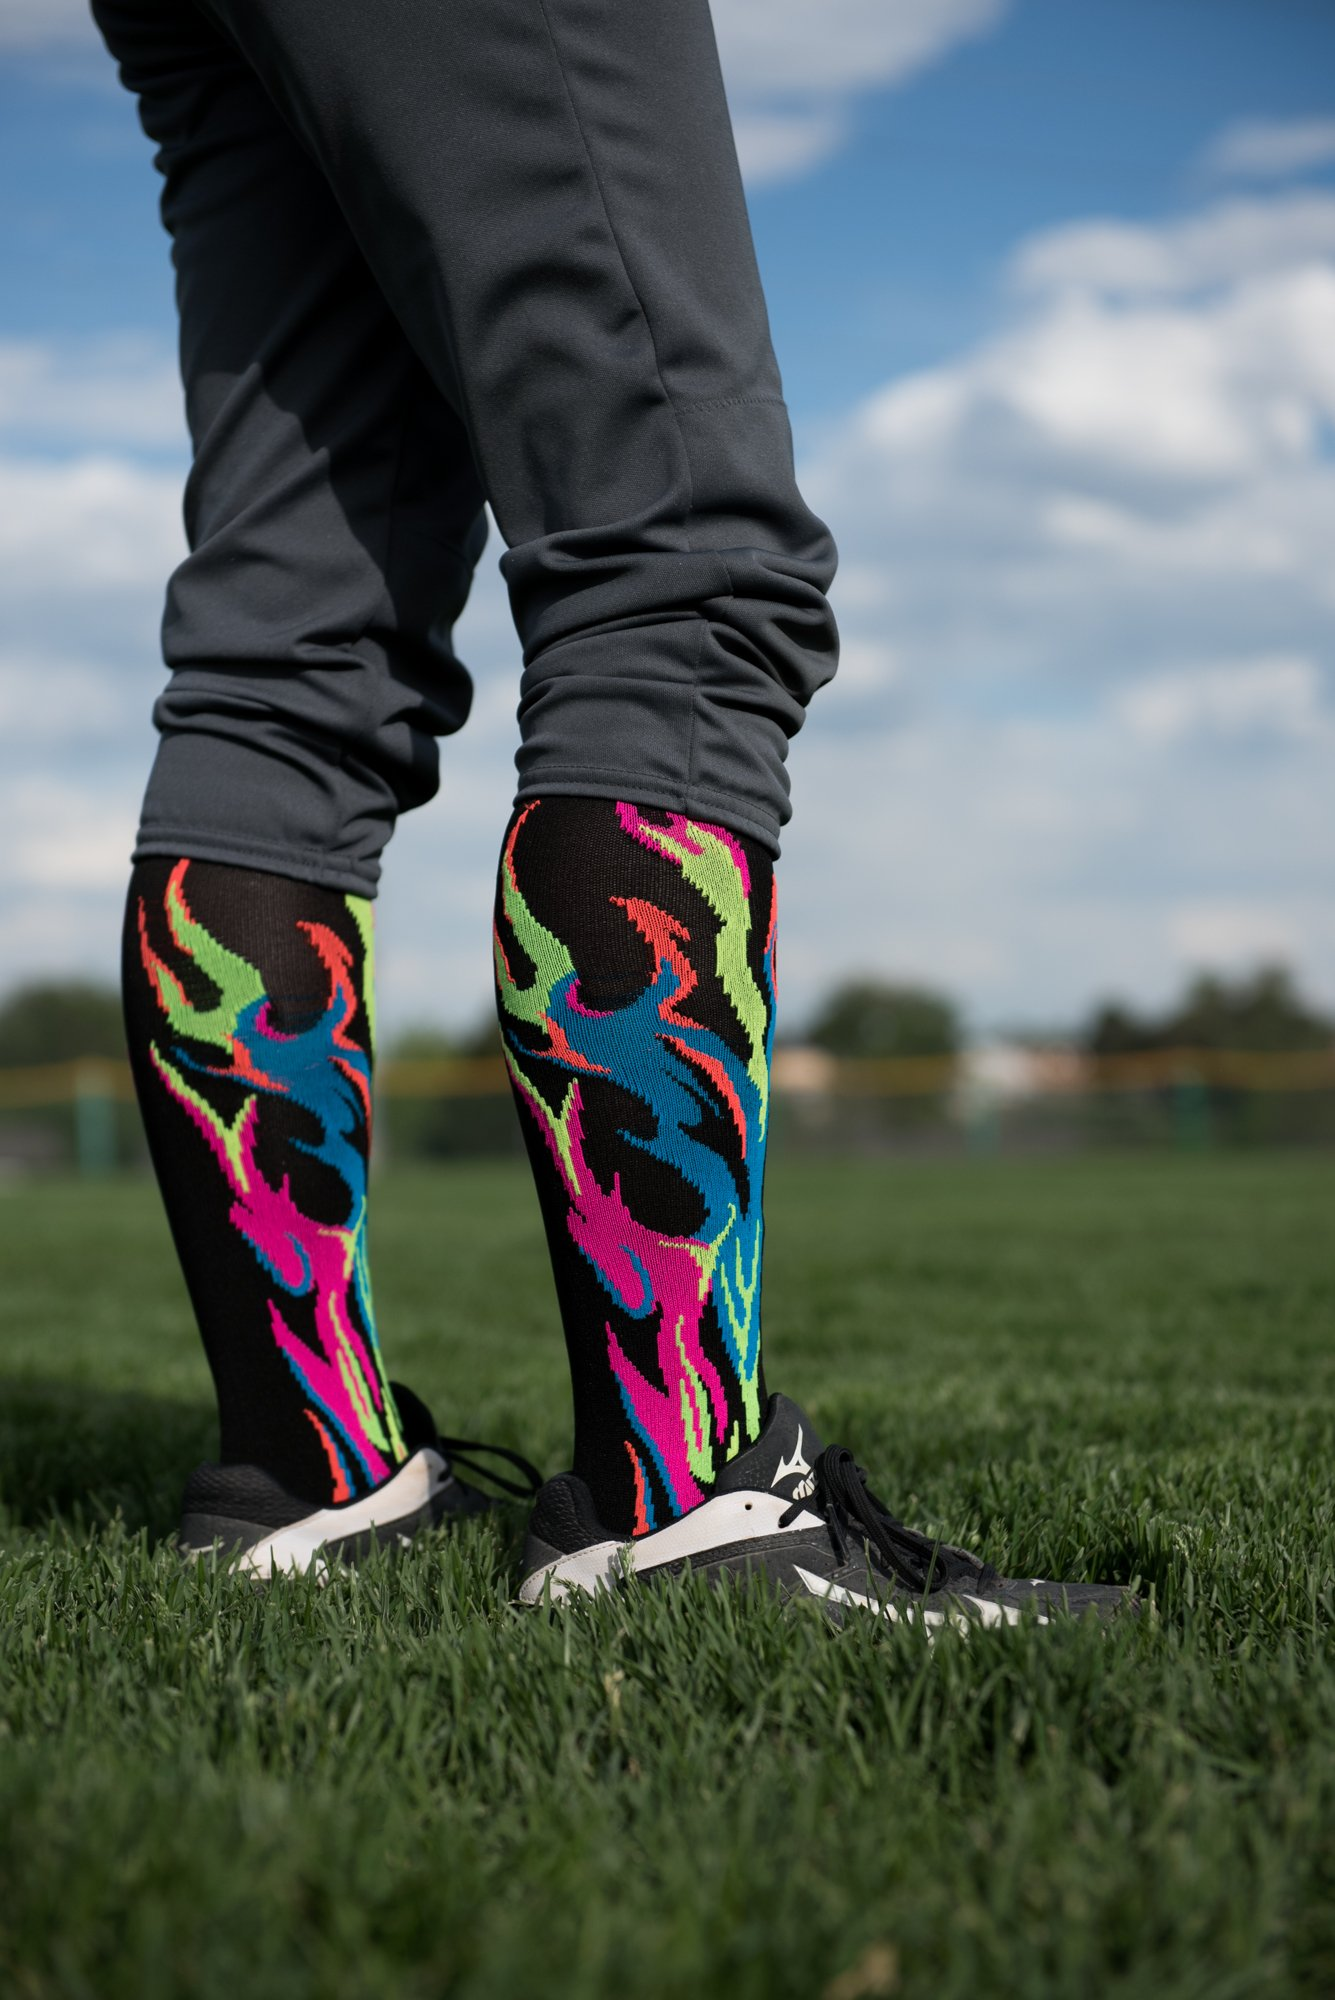 MadSportsStuff Flame Socks Athletic Over The Calf Socks (Black/Neon Pink/Pale Pink, Small) by MadSportsStuff (Image #5)